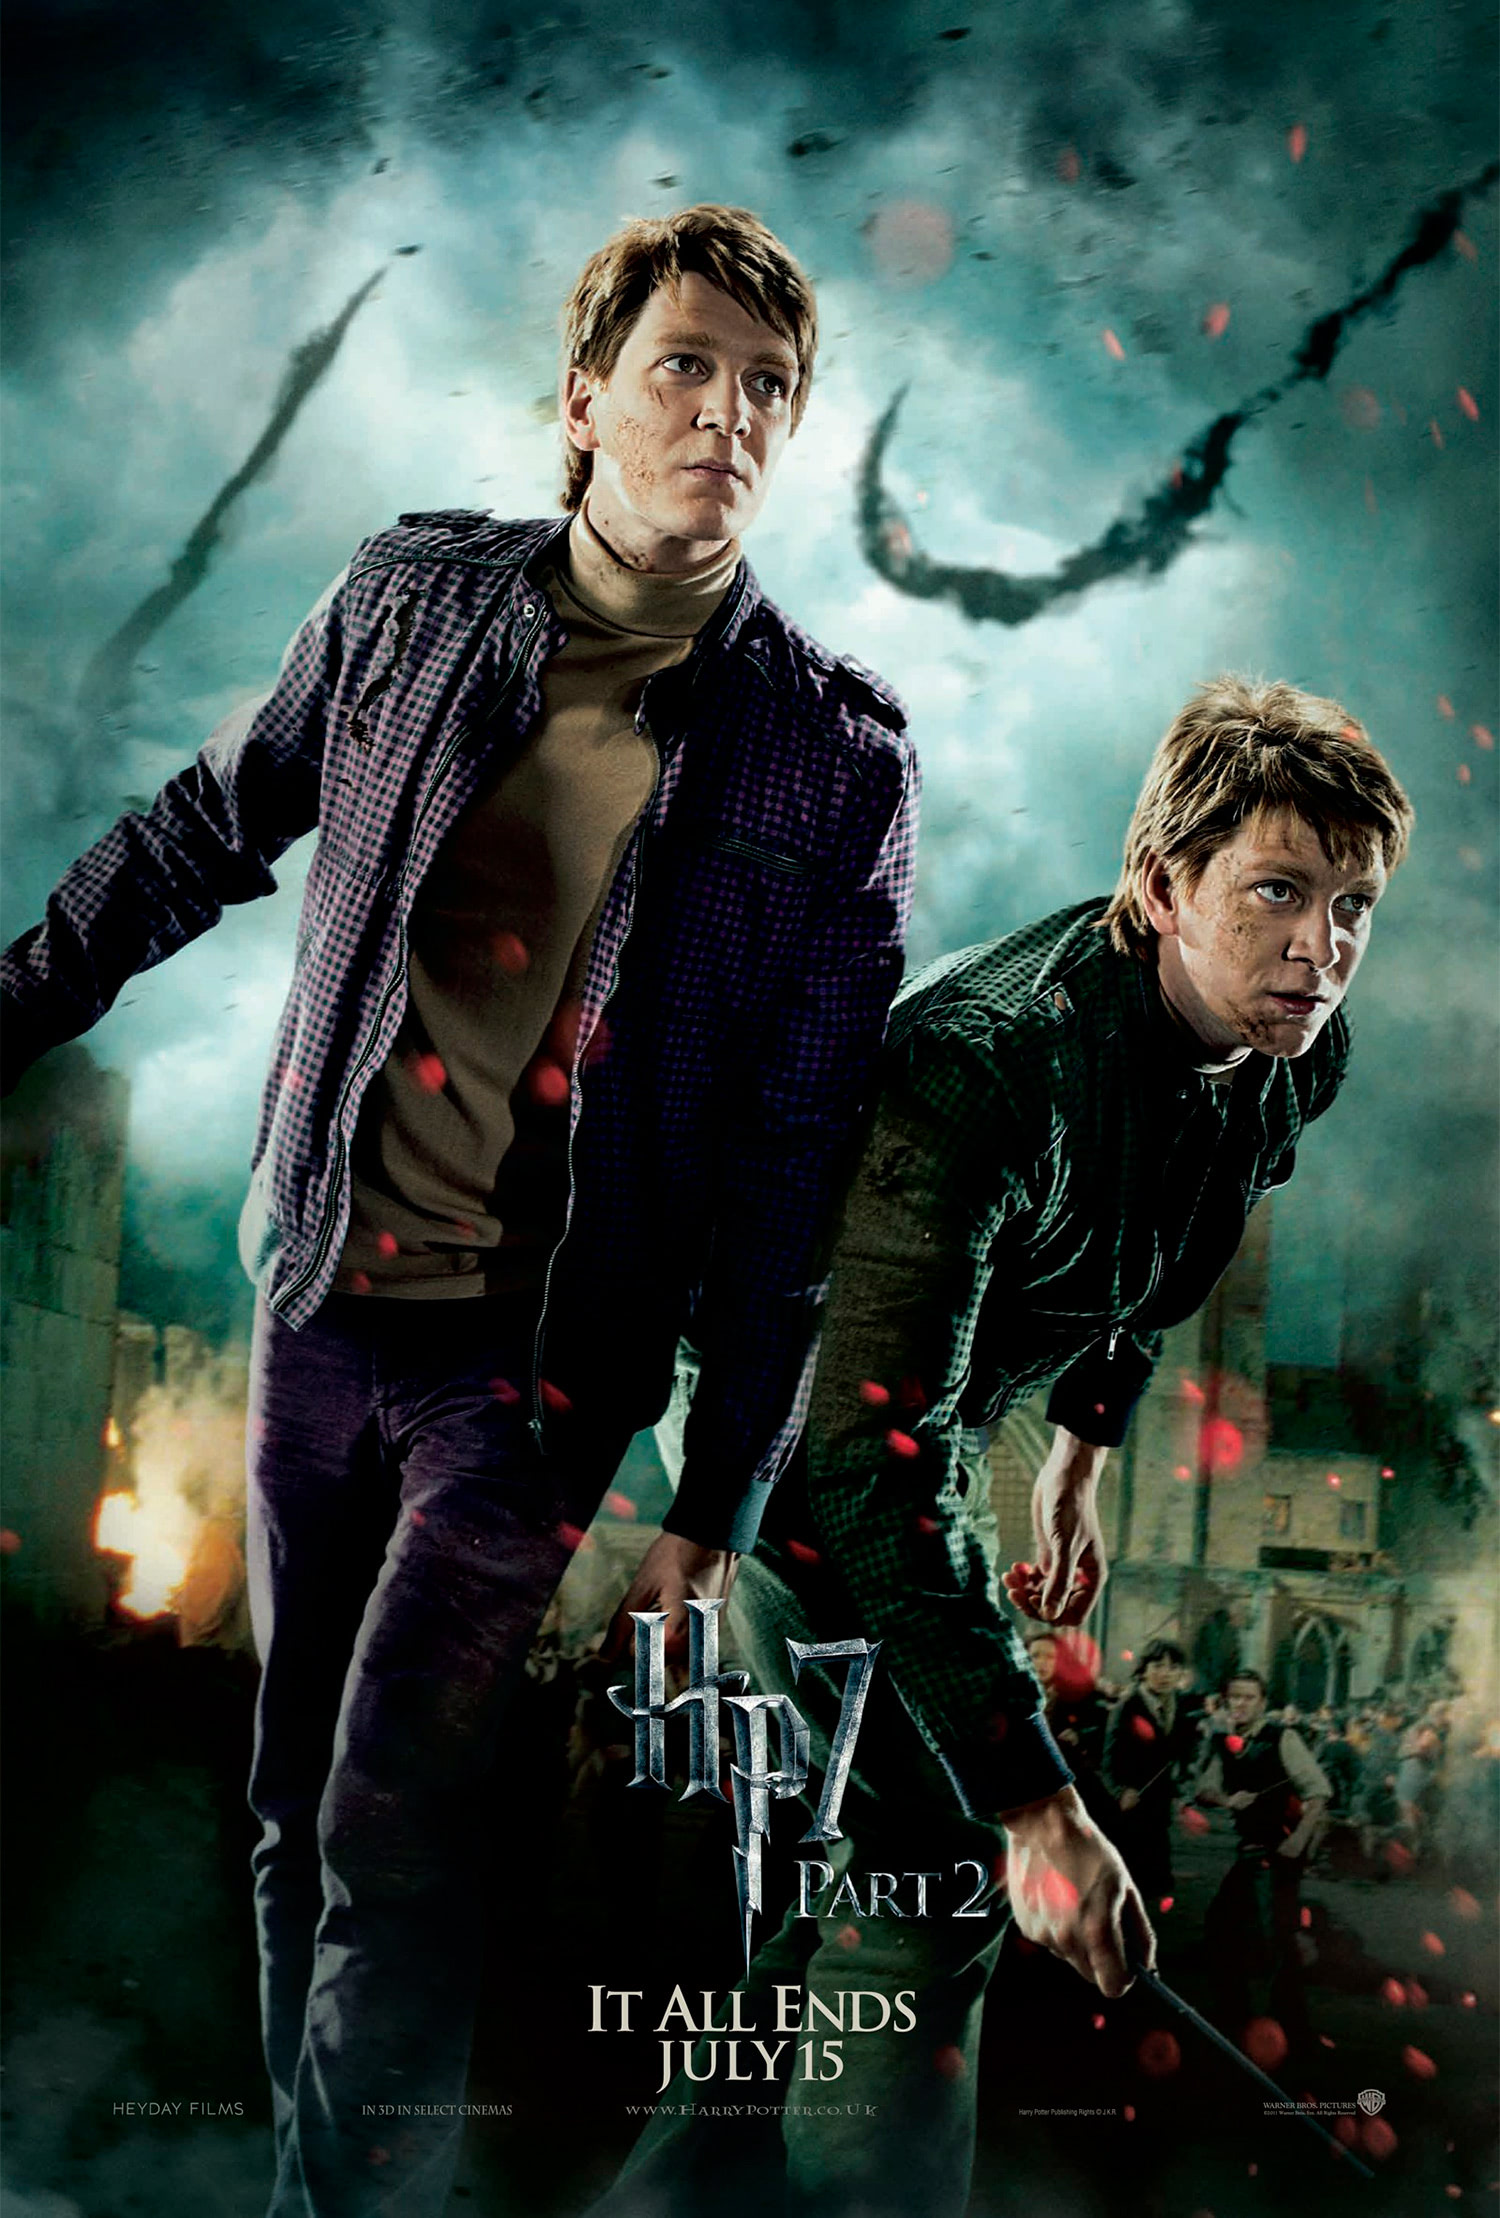 'Deathly Hallows: Part 2' Weasley Twins poster